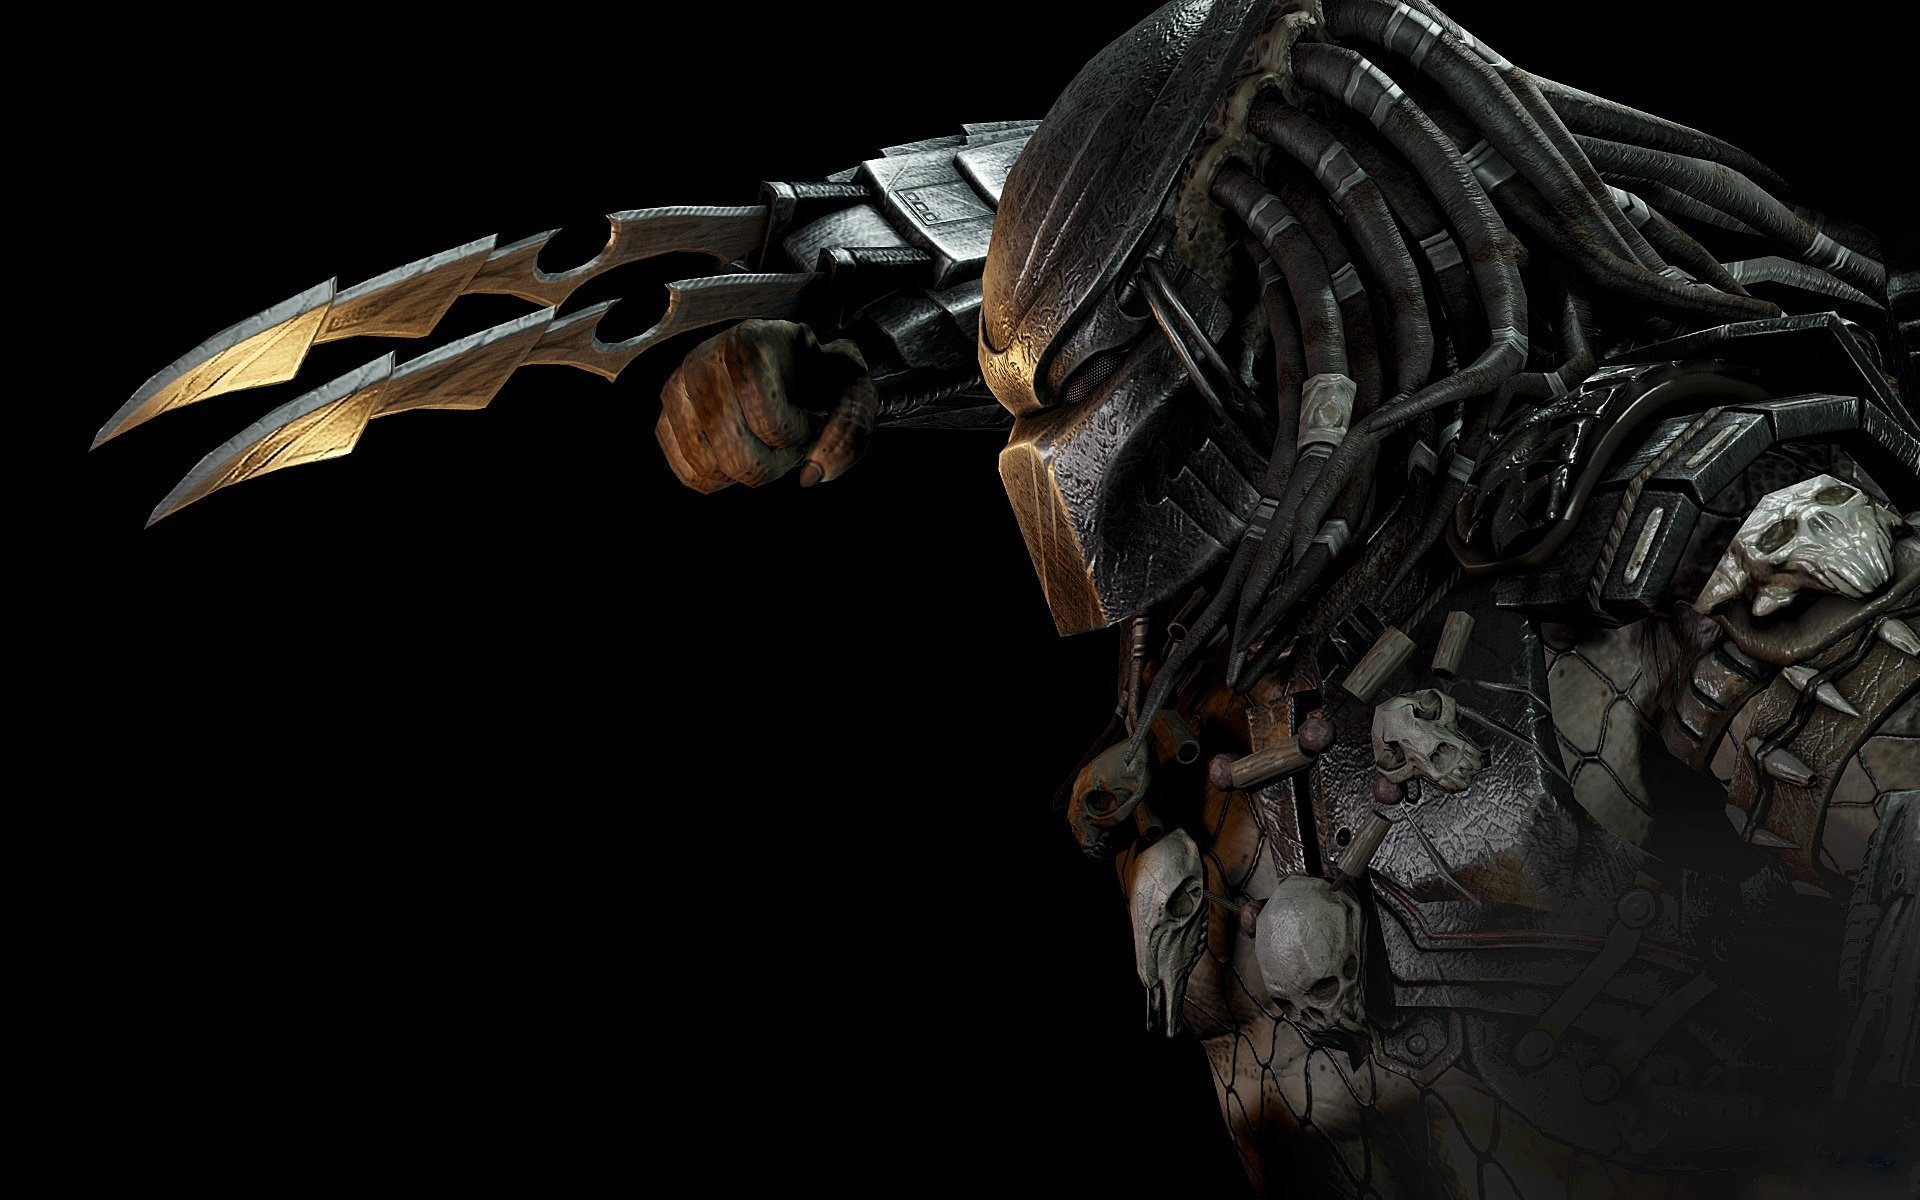 145 Predator Hd Wallpapers Background Images Wallpaper Abyss